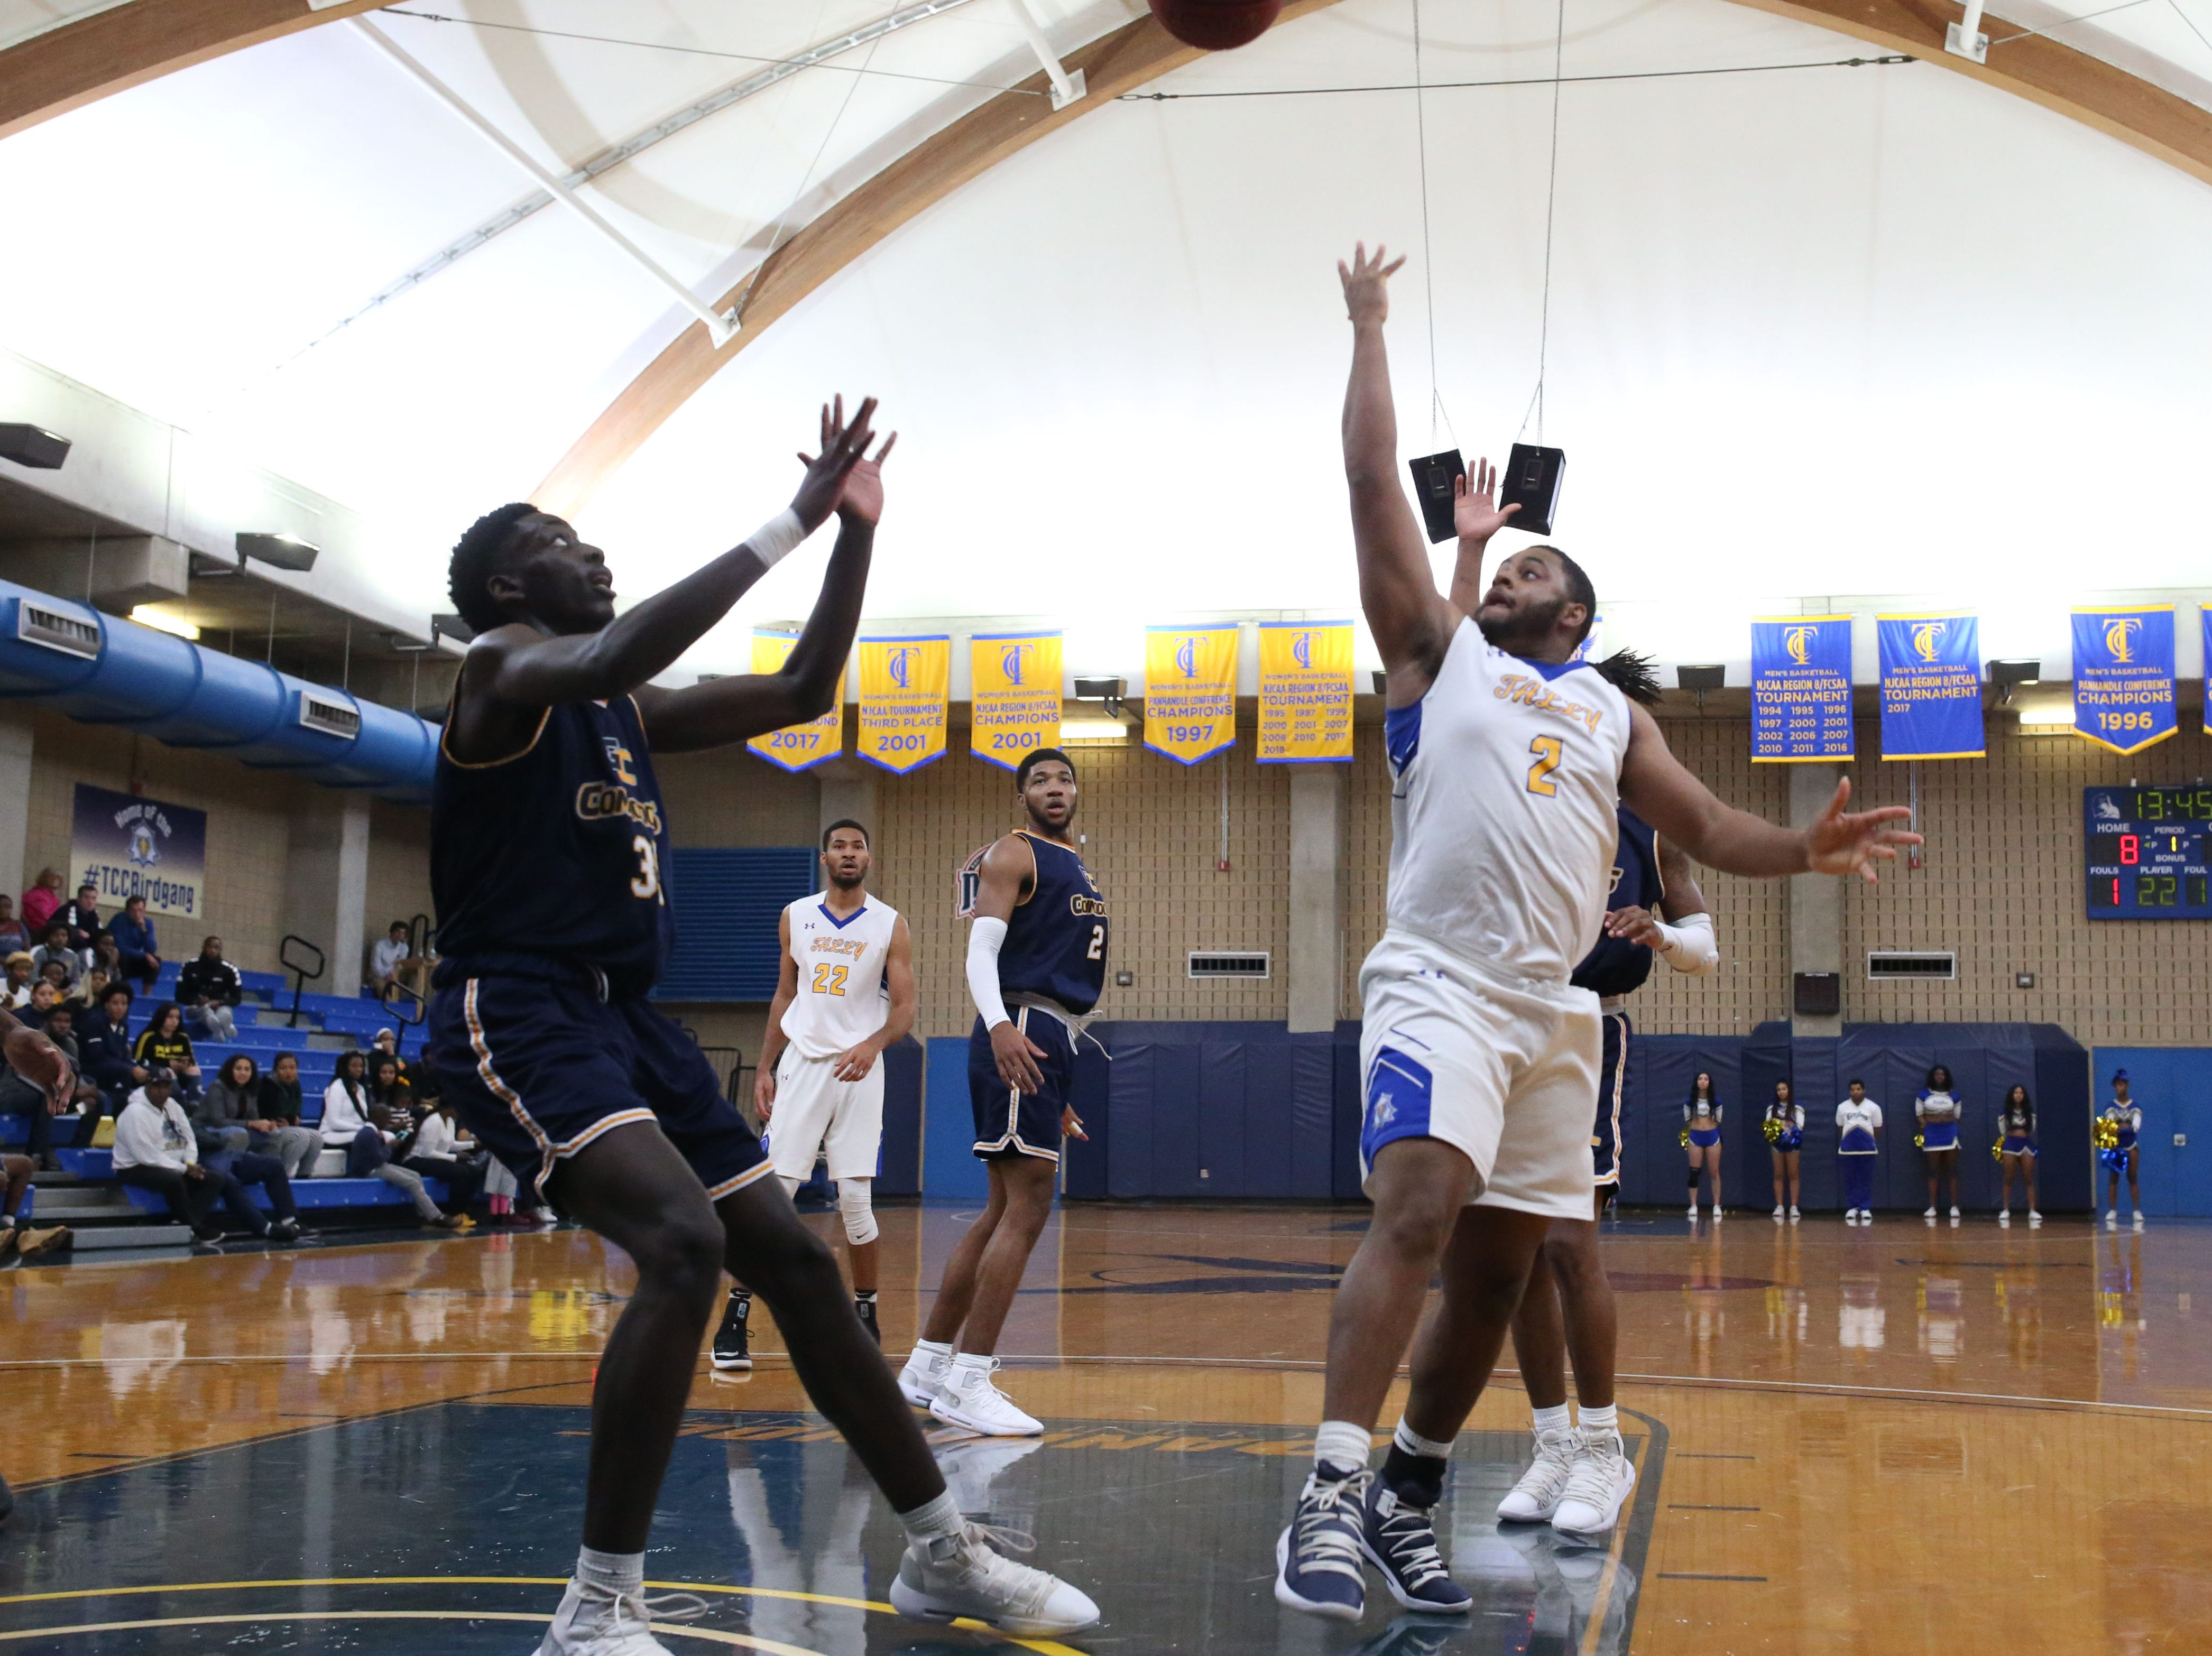 Tallahassee Community College Eagles guard Stephon Franklin (2) shoots from inside the paint. The Tallahassee Community College Eagles host the Gulf Coast State College Commodores in a conference match-up in the Eagledome, Saturday, Jan. 5, 2019.